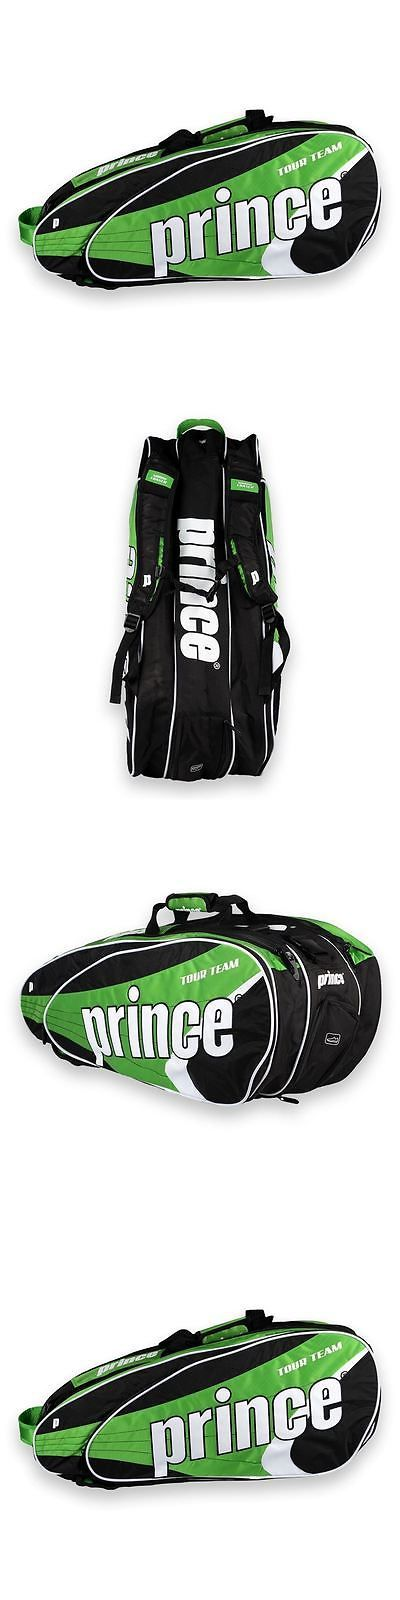 Other Racquet Sport Accs 159161: Prince Tour Team Green 9-Pack Tennis Bag -> BUY IT NOW ONLY: $63.99 on eBay!